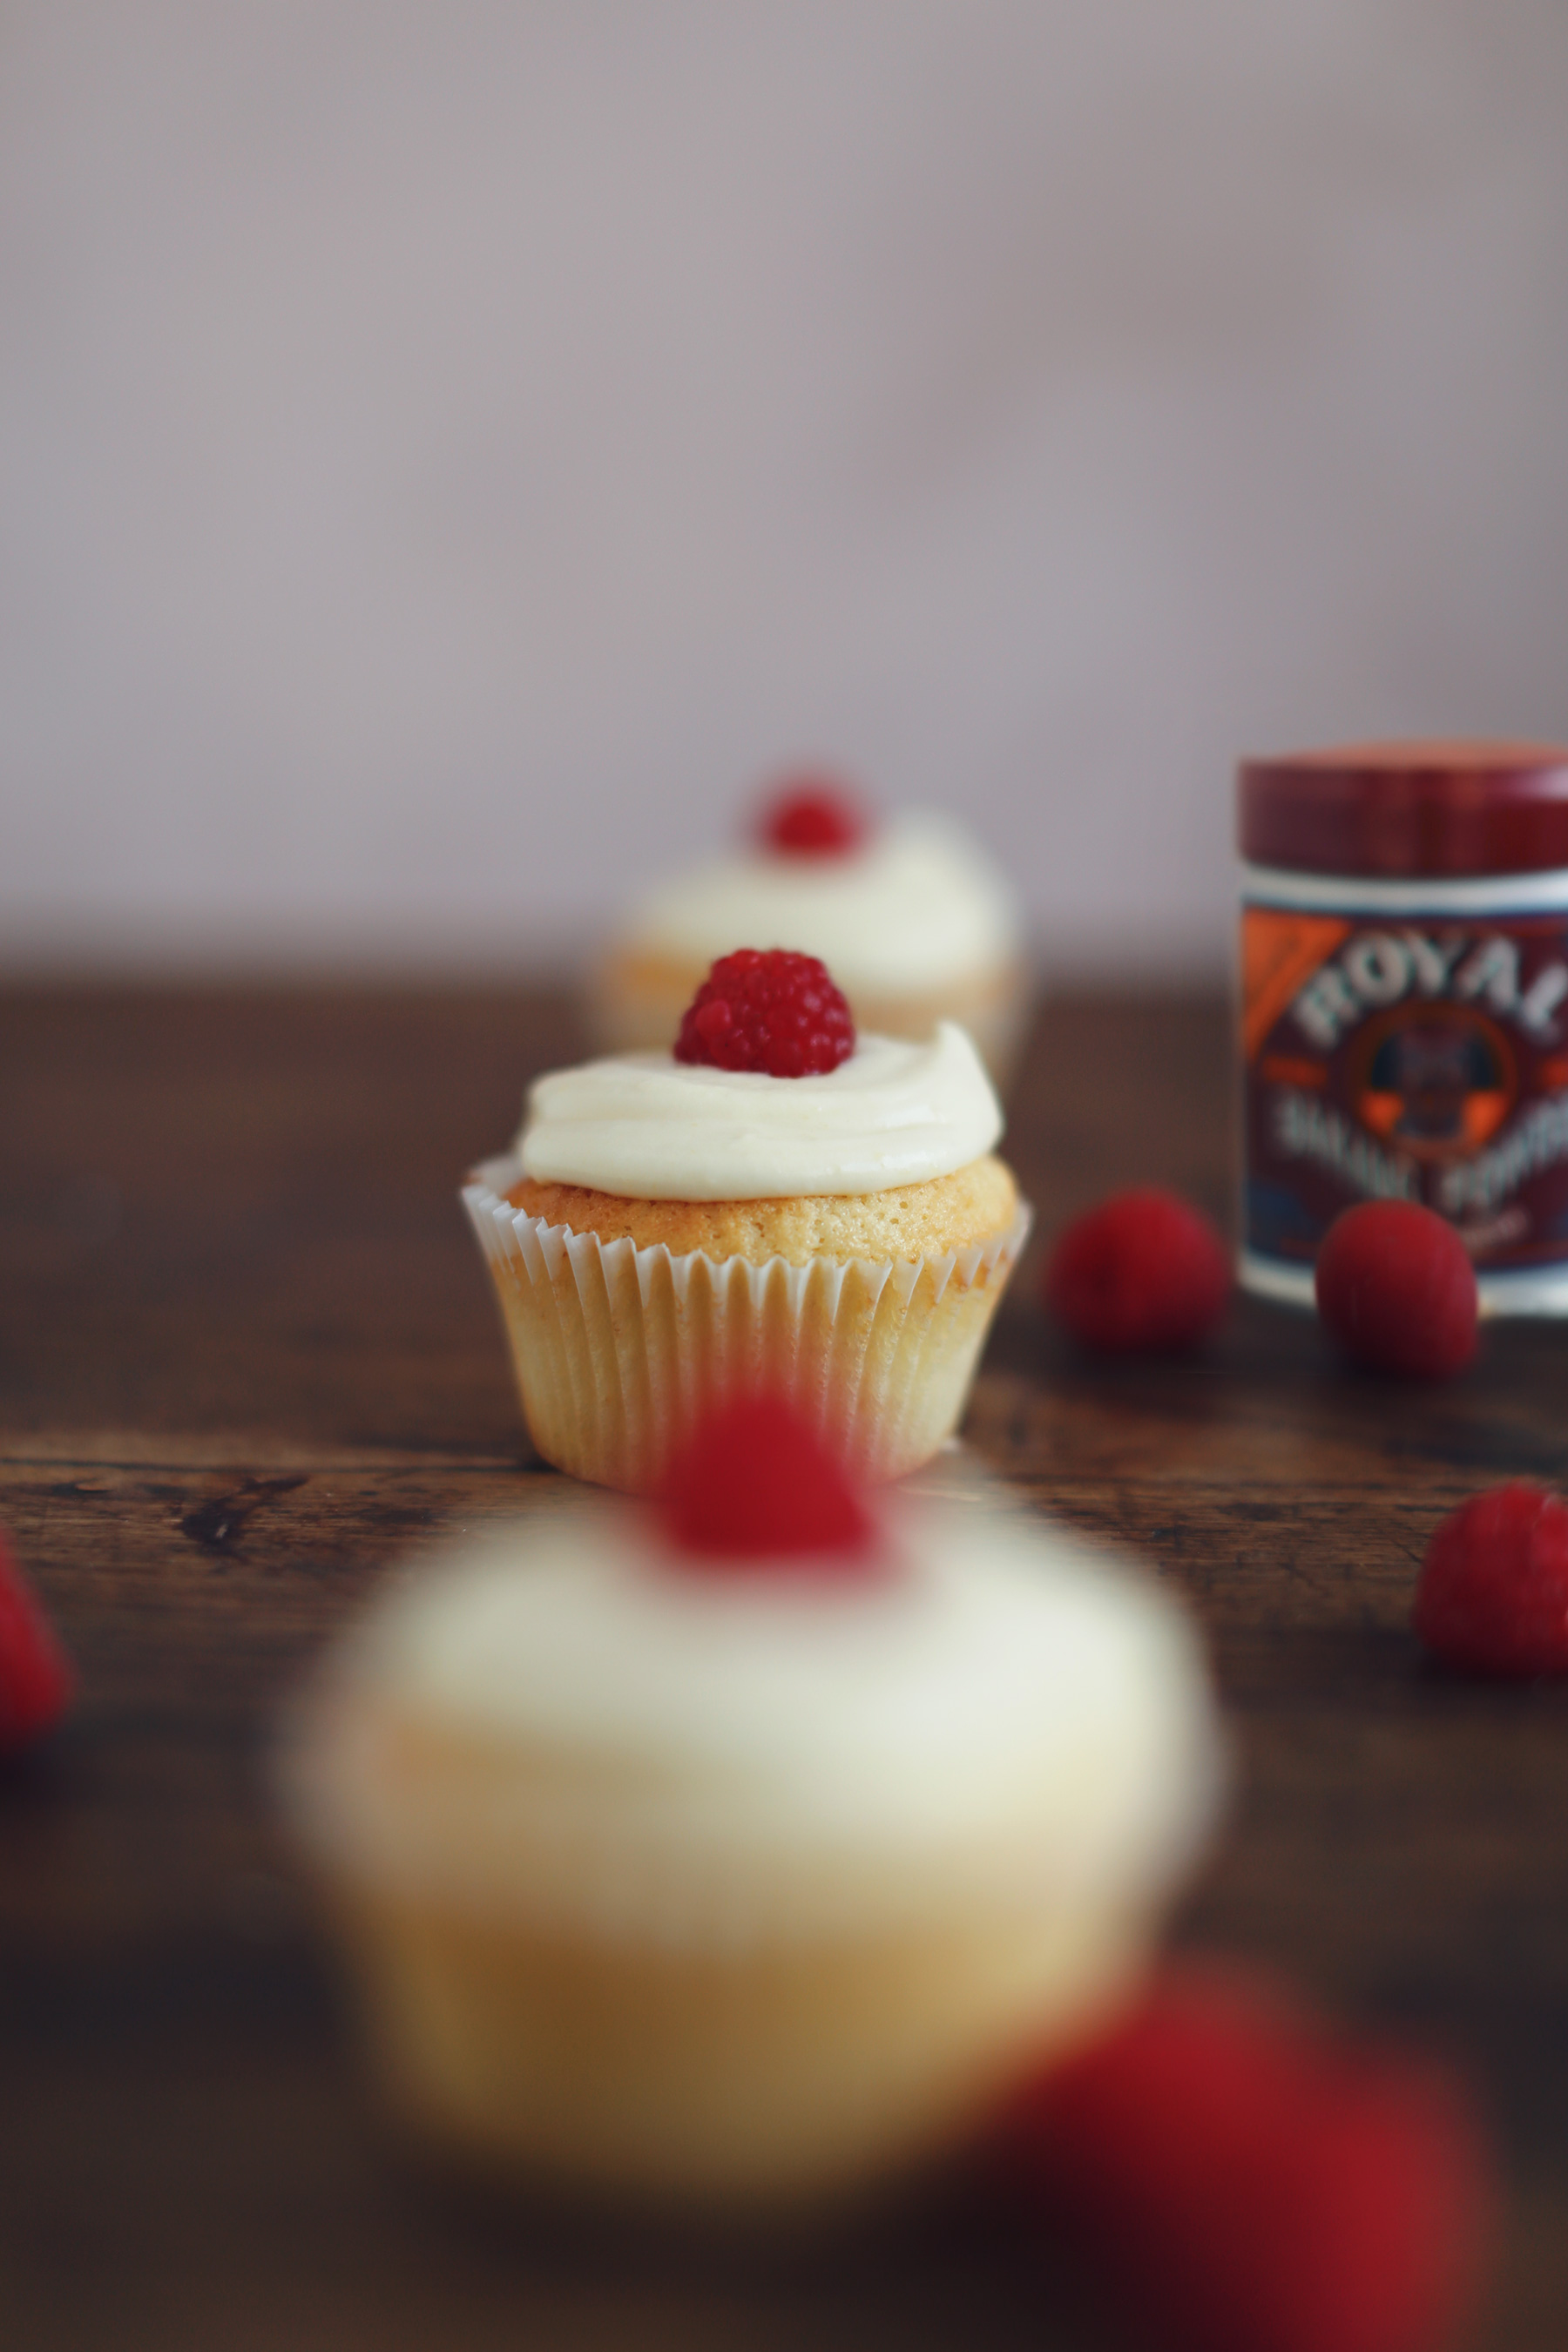 Raspberry,-custard-and-maple-syrup-cupcakes14-web